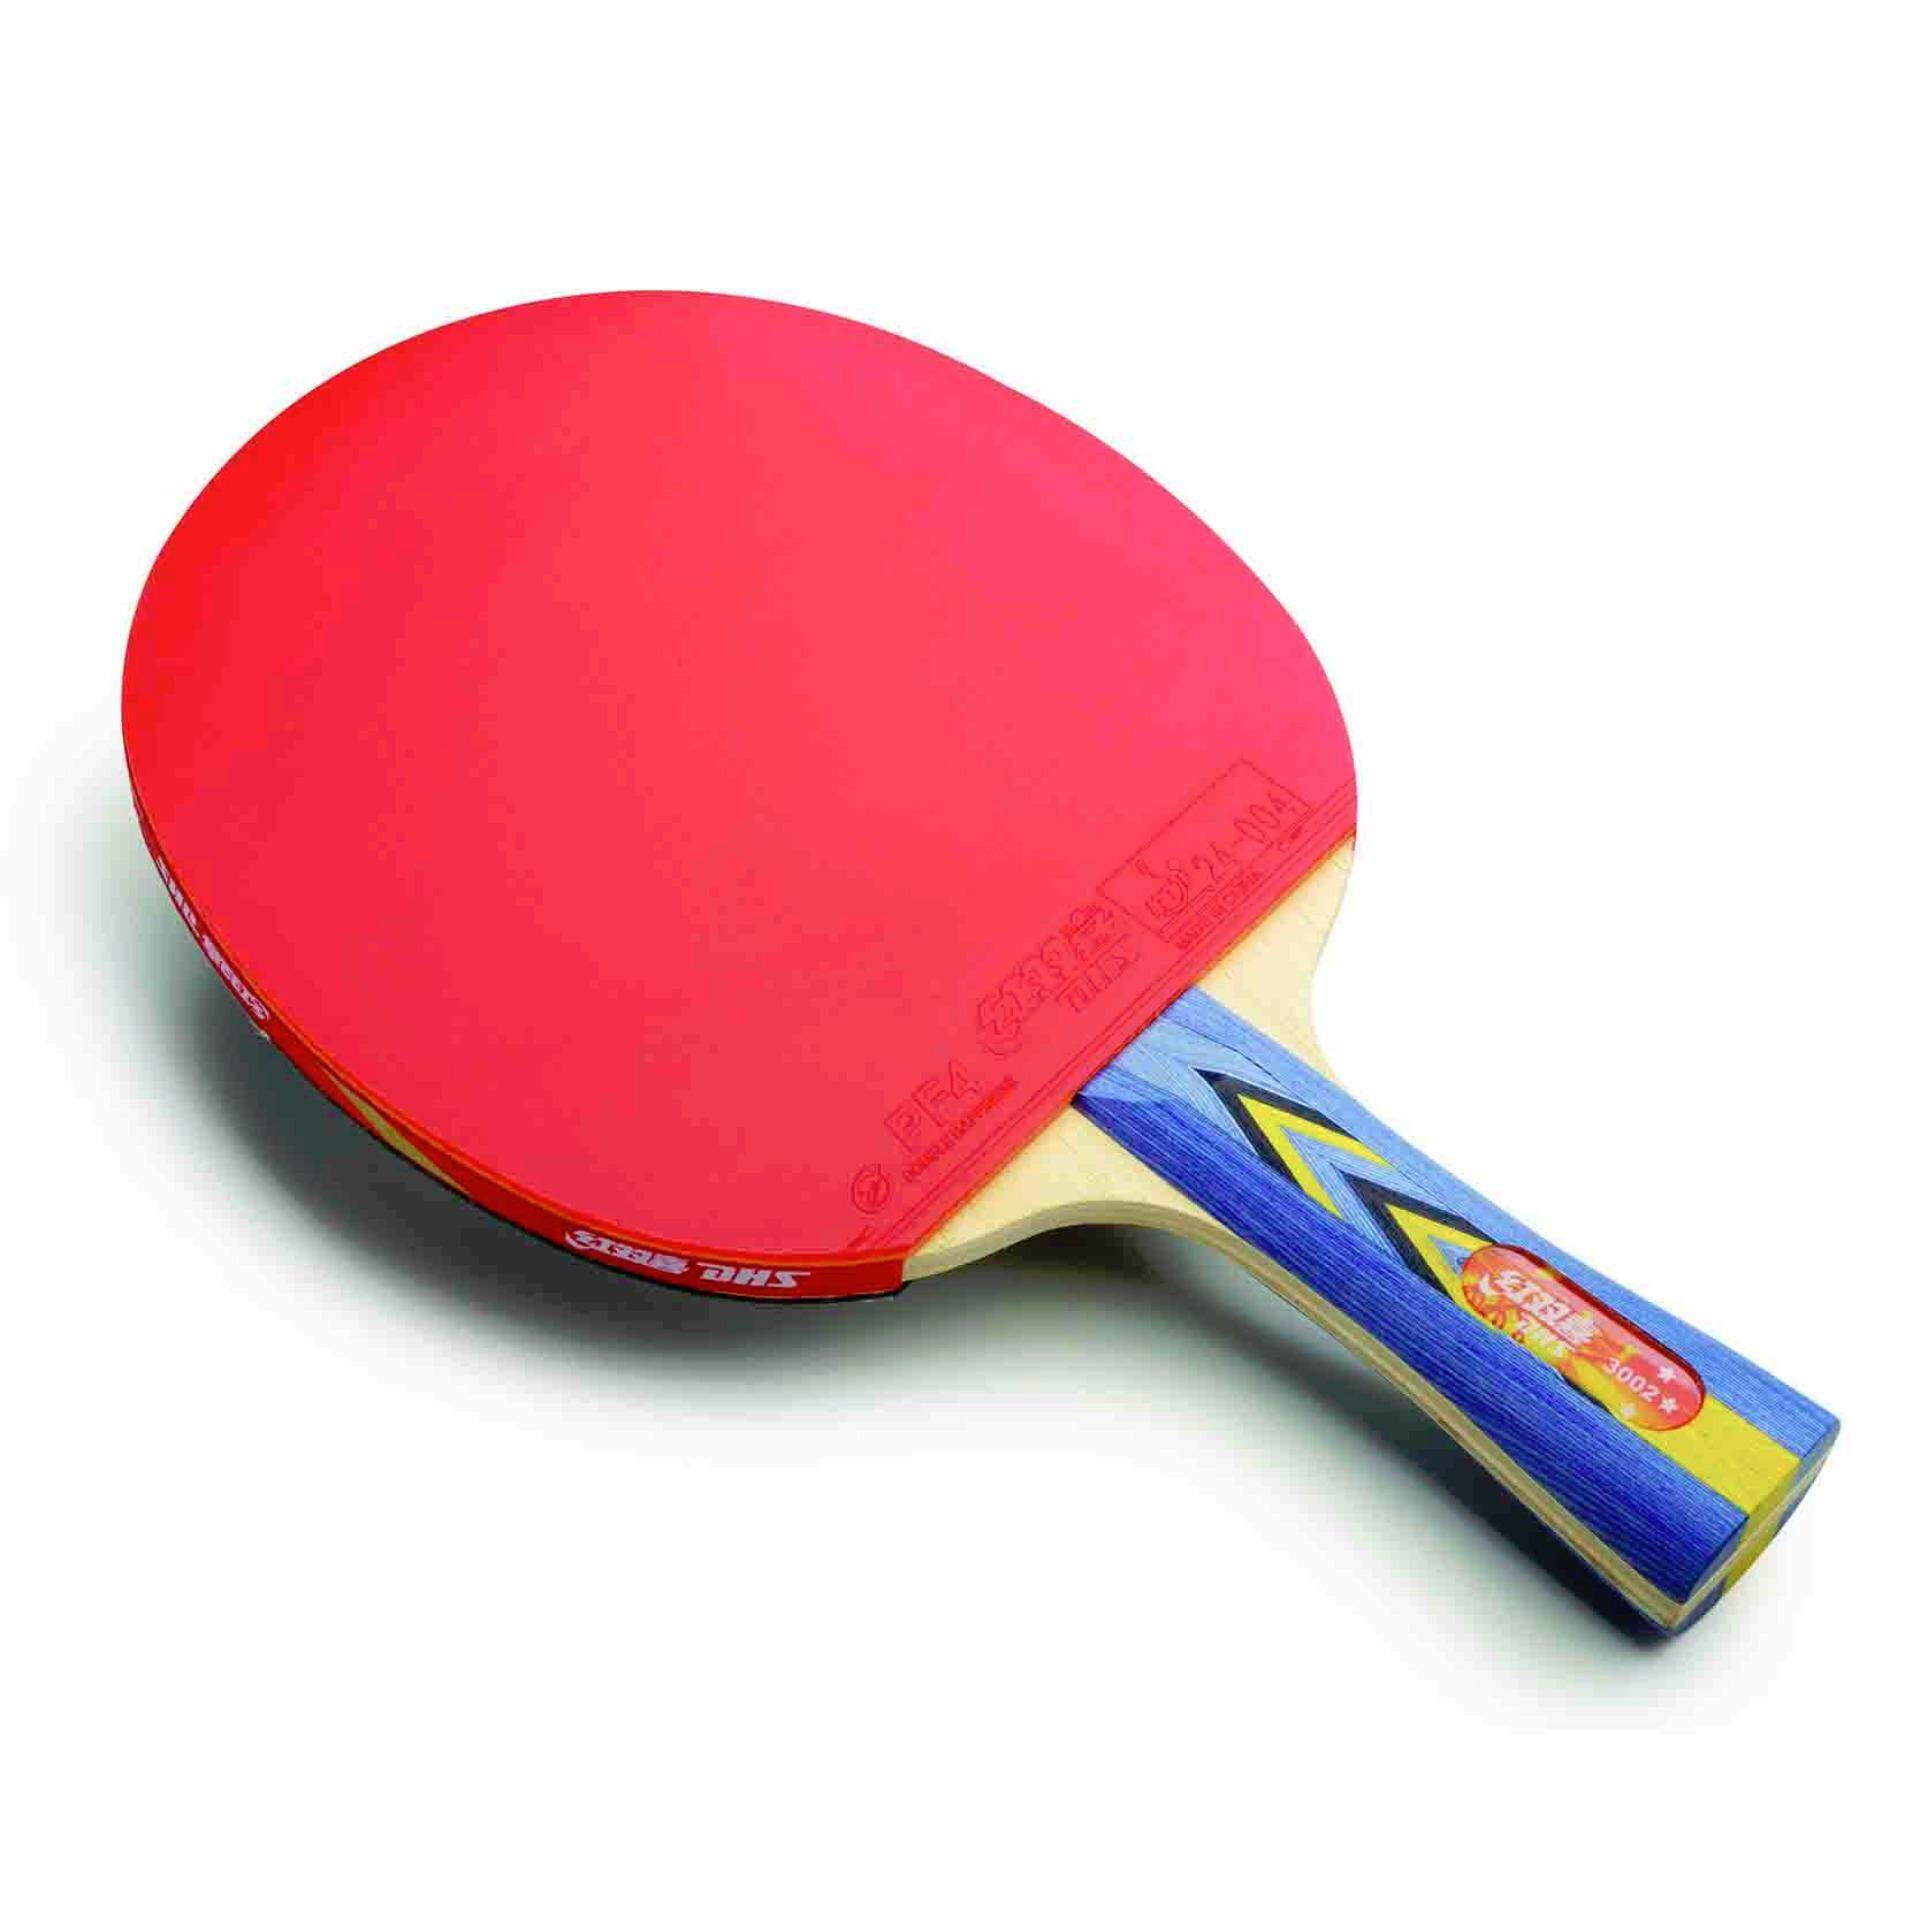 DHS Table Tennis Bat A 3002